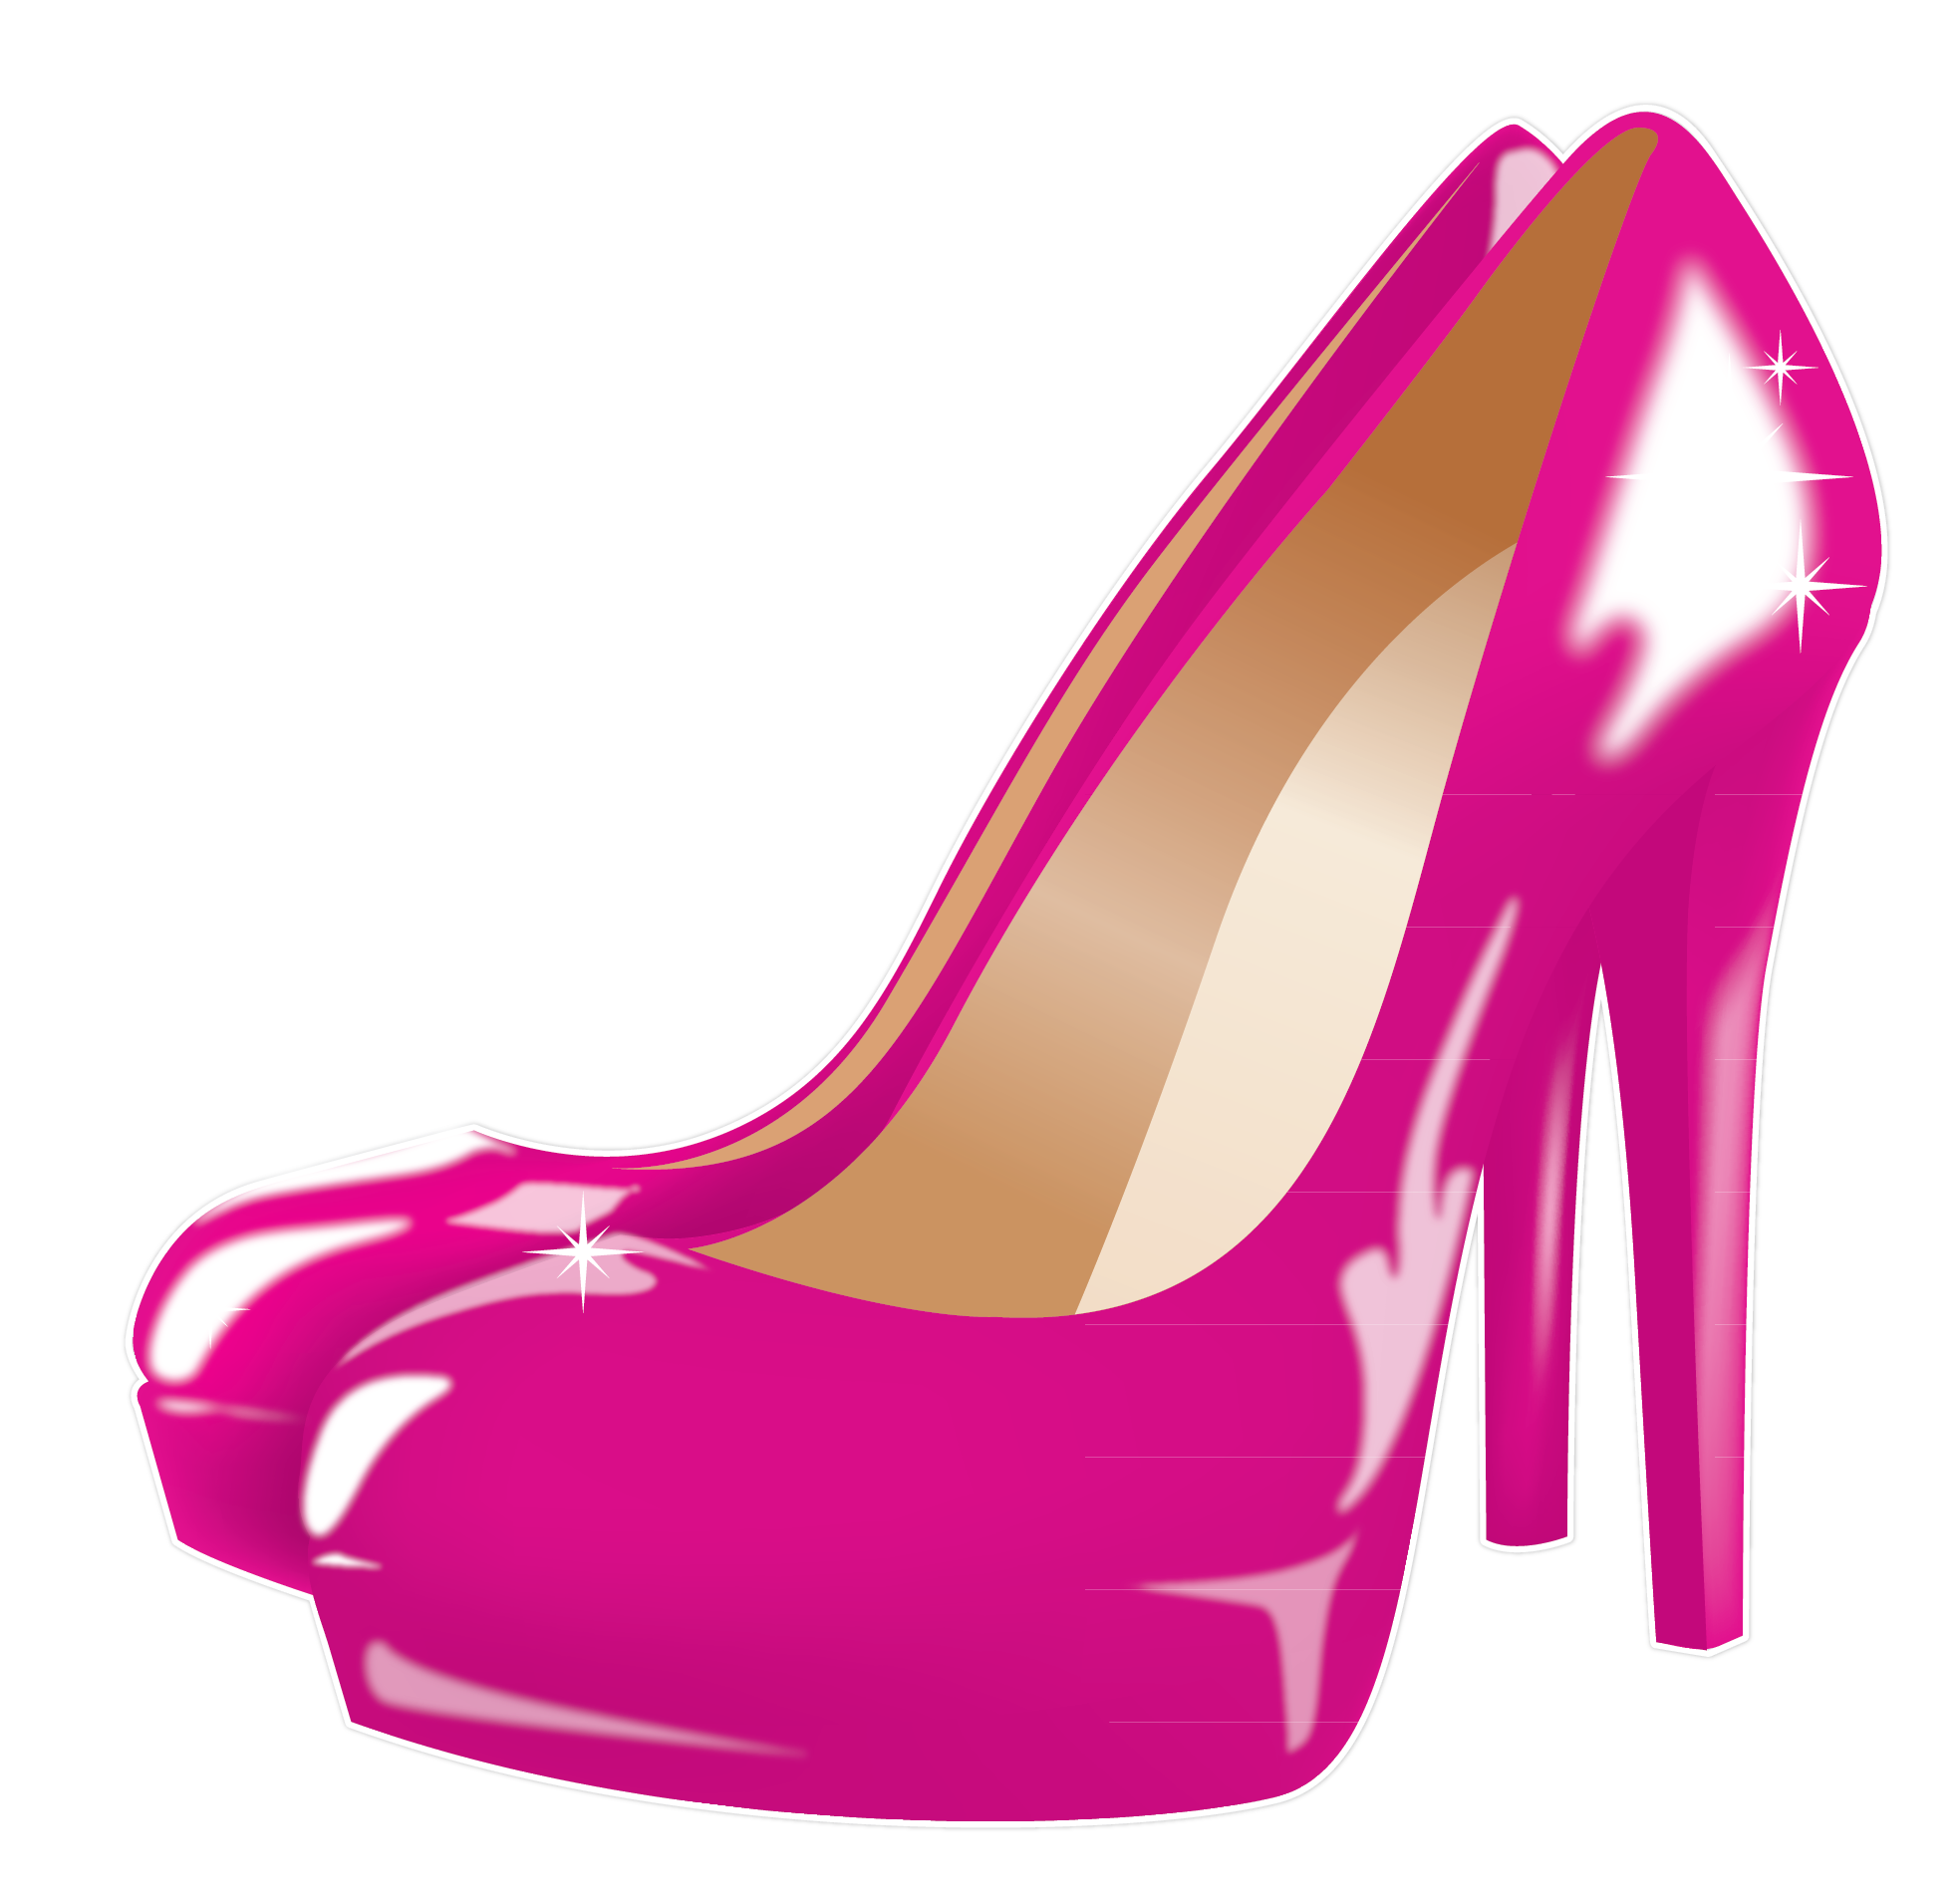 High heel shoes style style and heels on clip art.